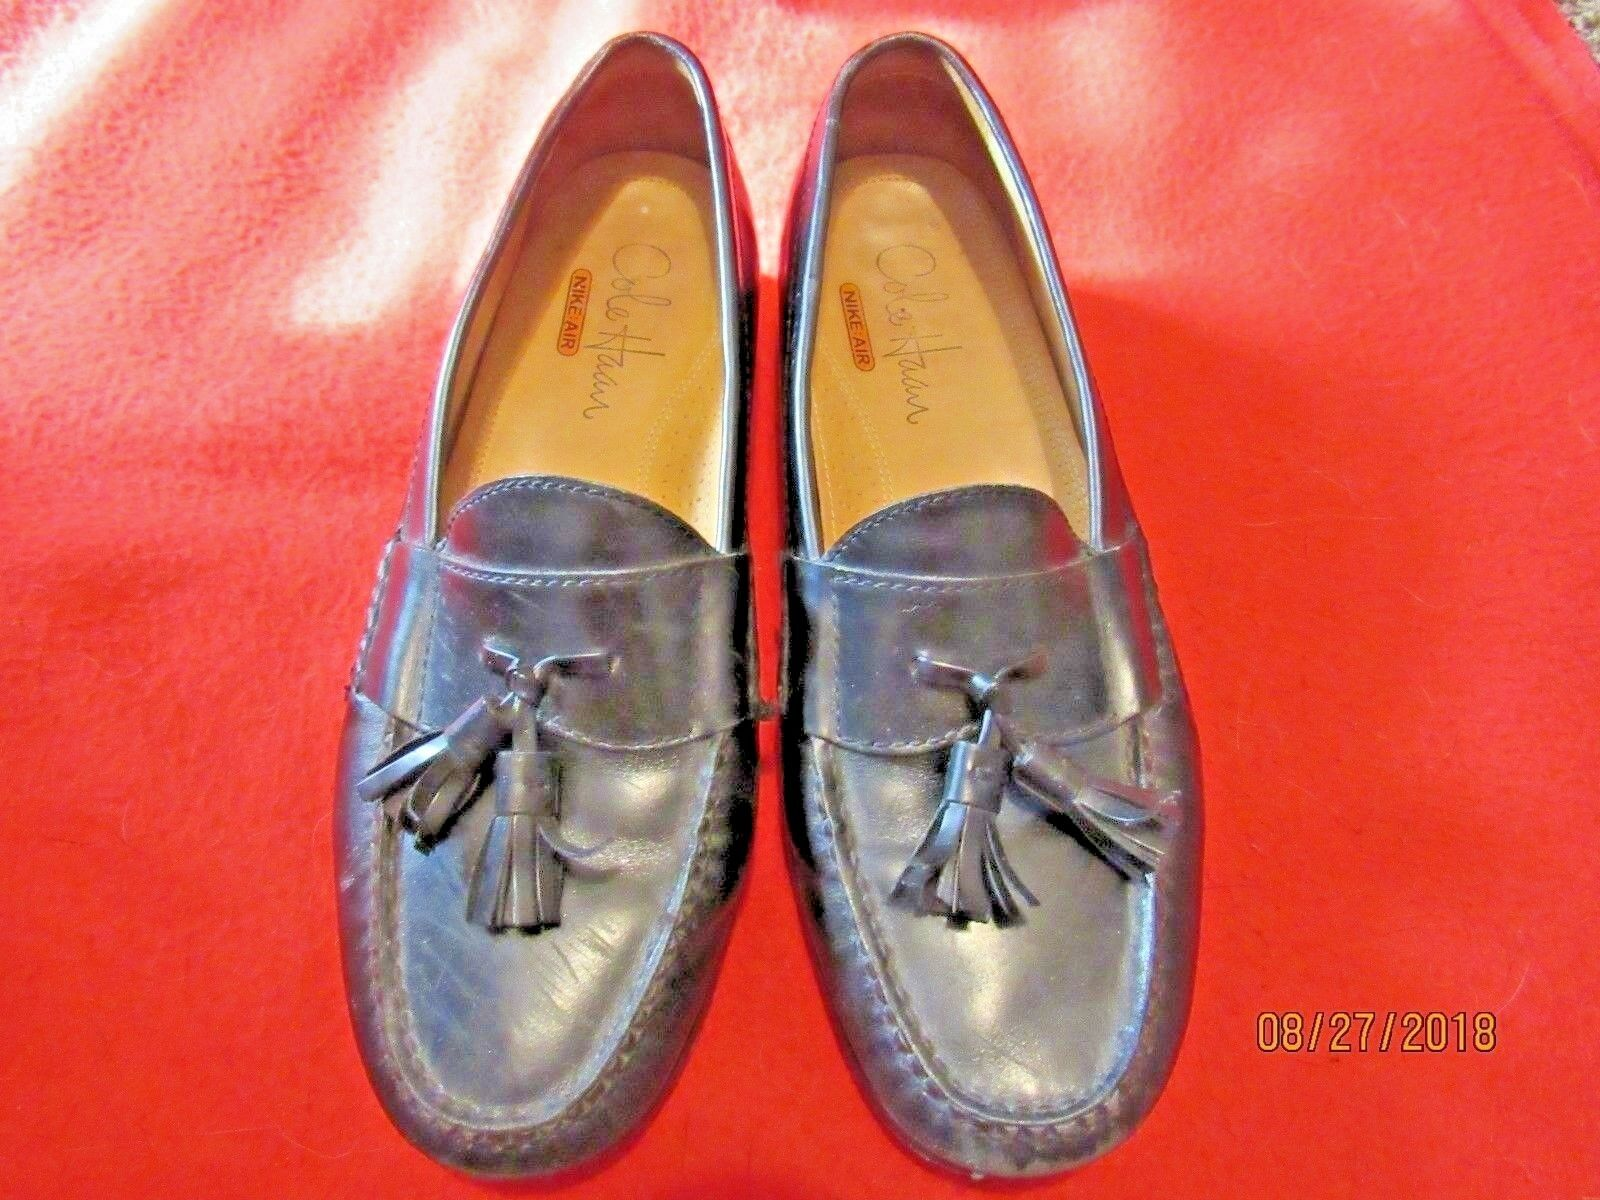 Cole Haan NikeAir Men's Black Leather Tassel Loafers Size 8 US